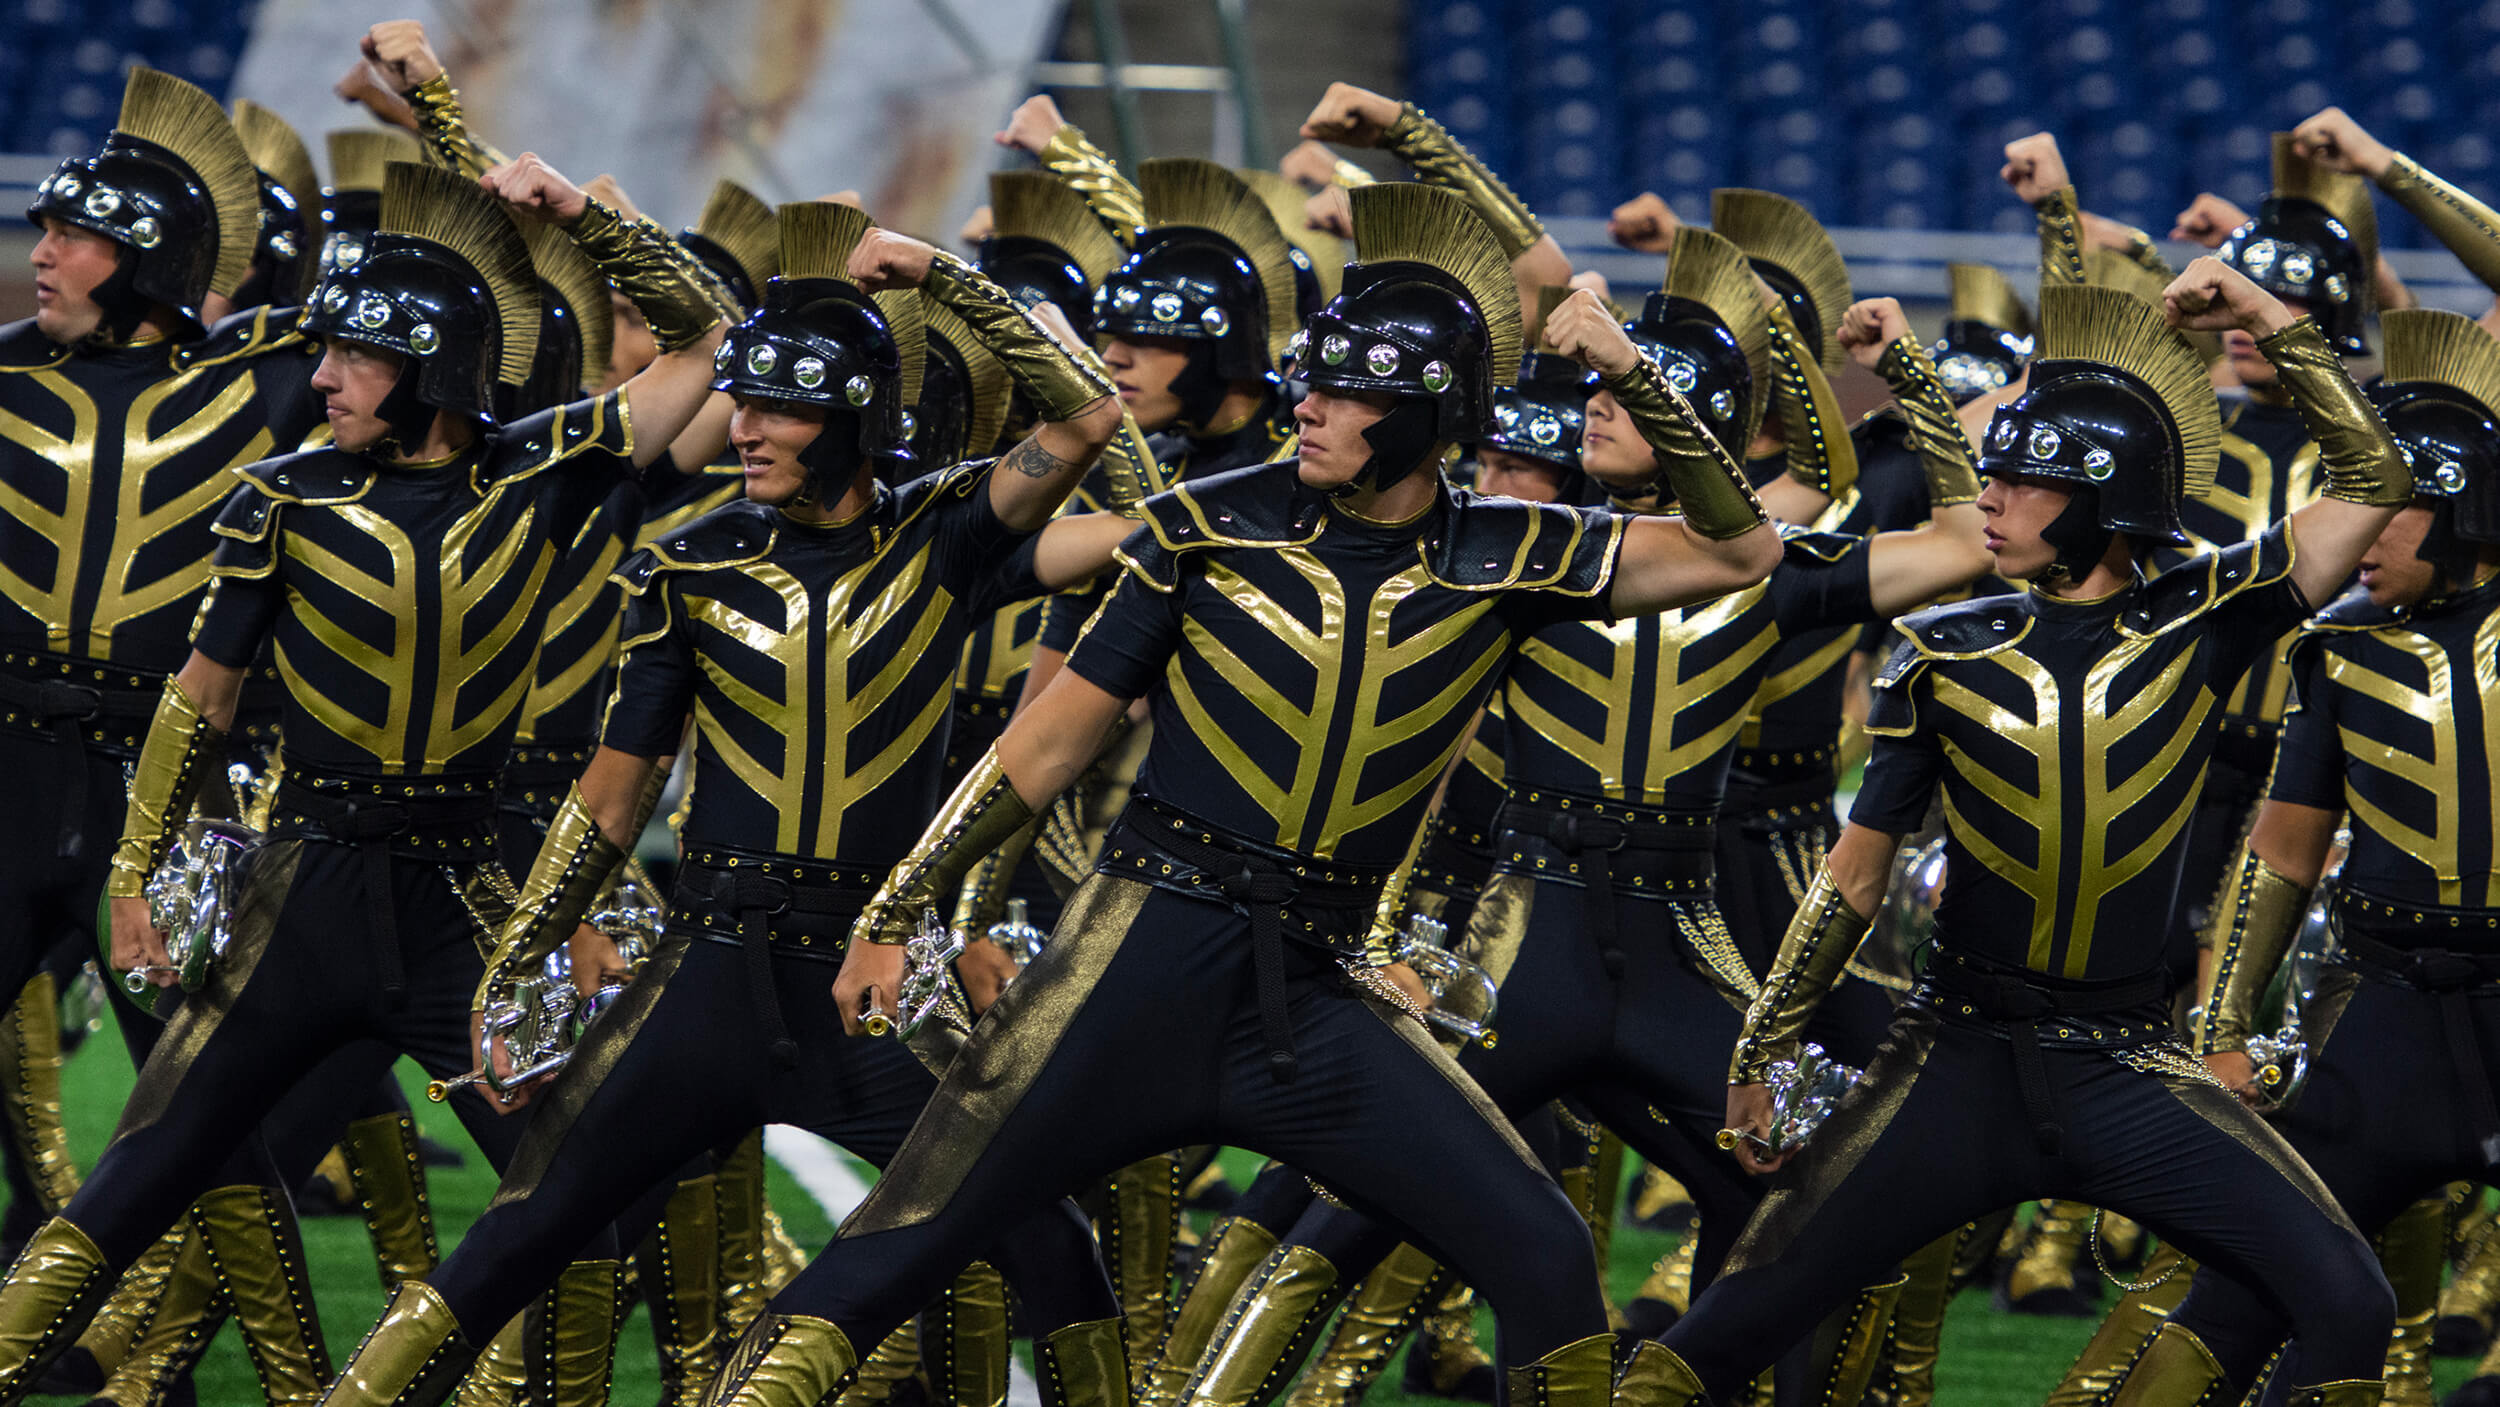 5 takeaways from the first weekend of #DCI2019 action